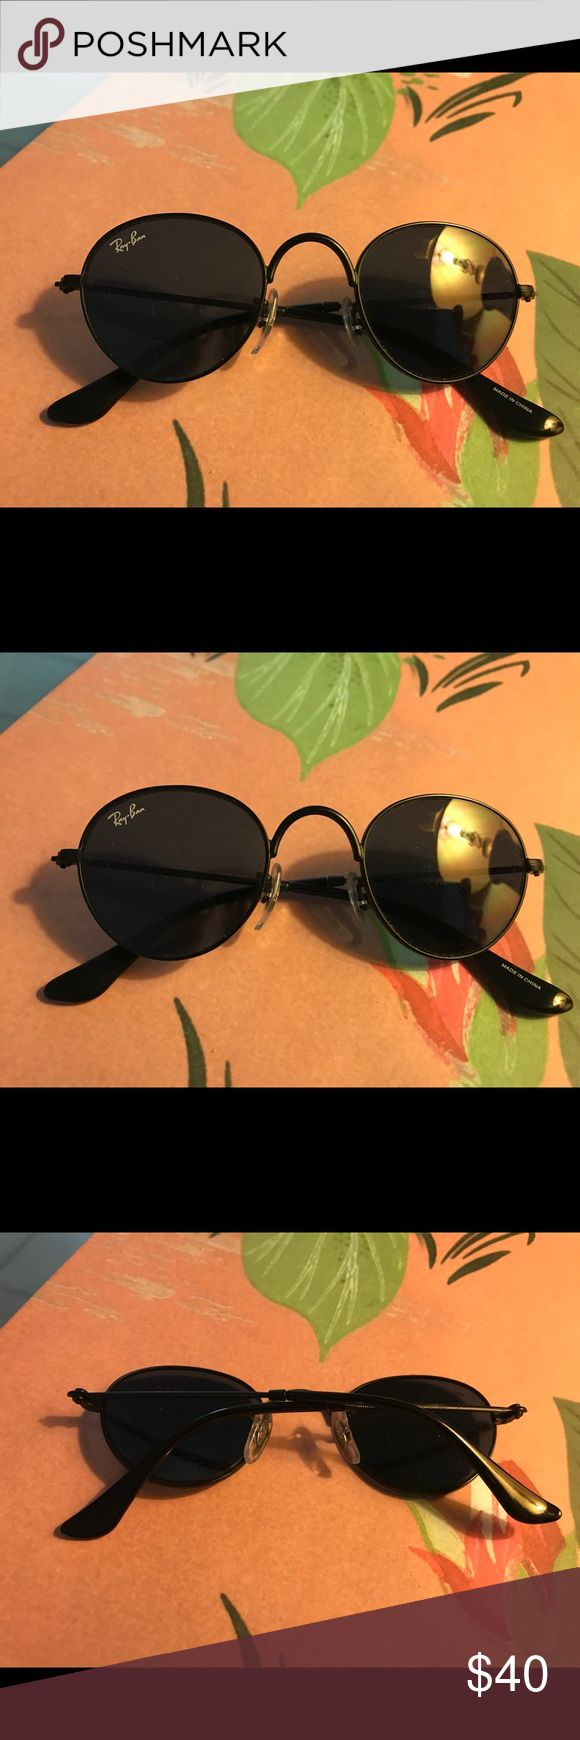 Ray-Ban Jr. Kids Sunglass John Lennon Style nwot For children   Adorable Round Frame Sunglass just like grown ups! Ray-Ban Accessories Sunglasses